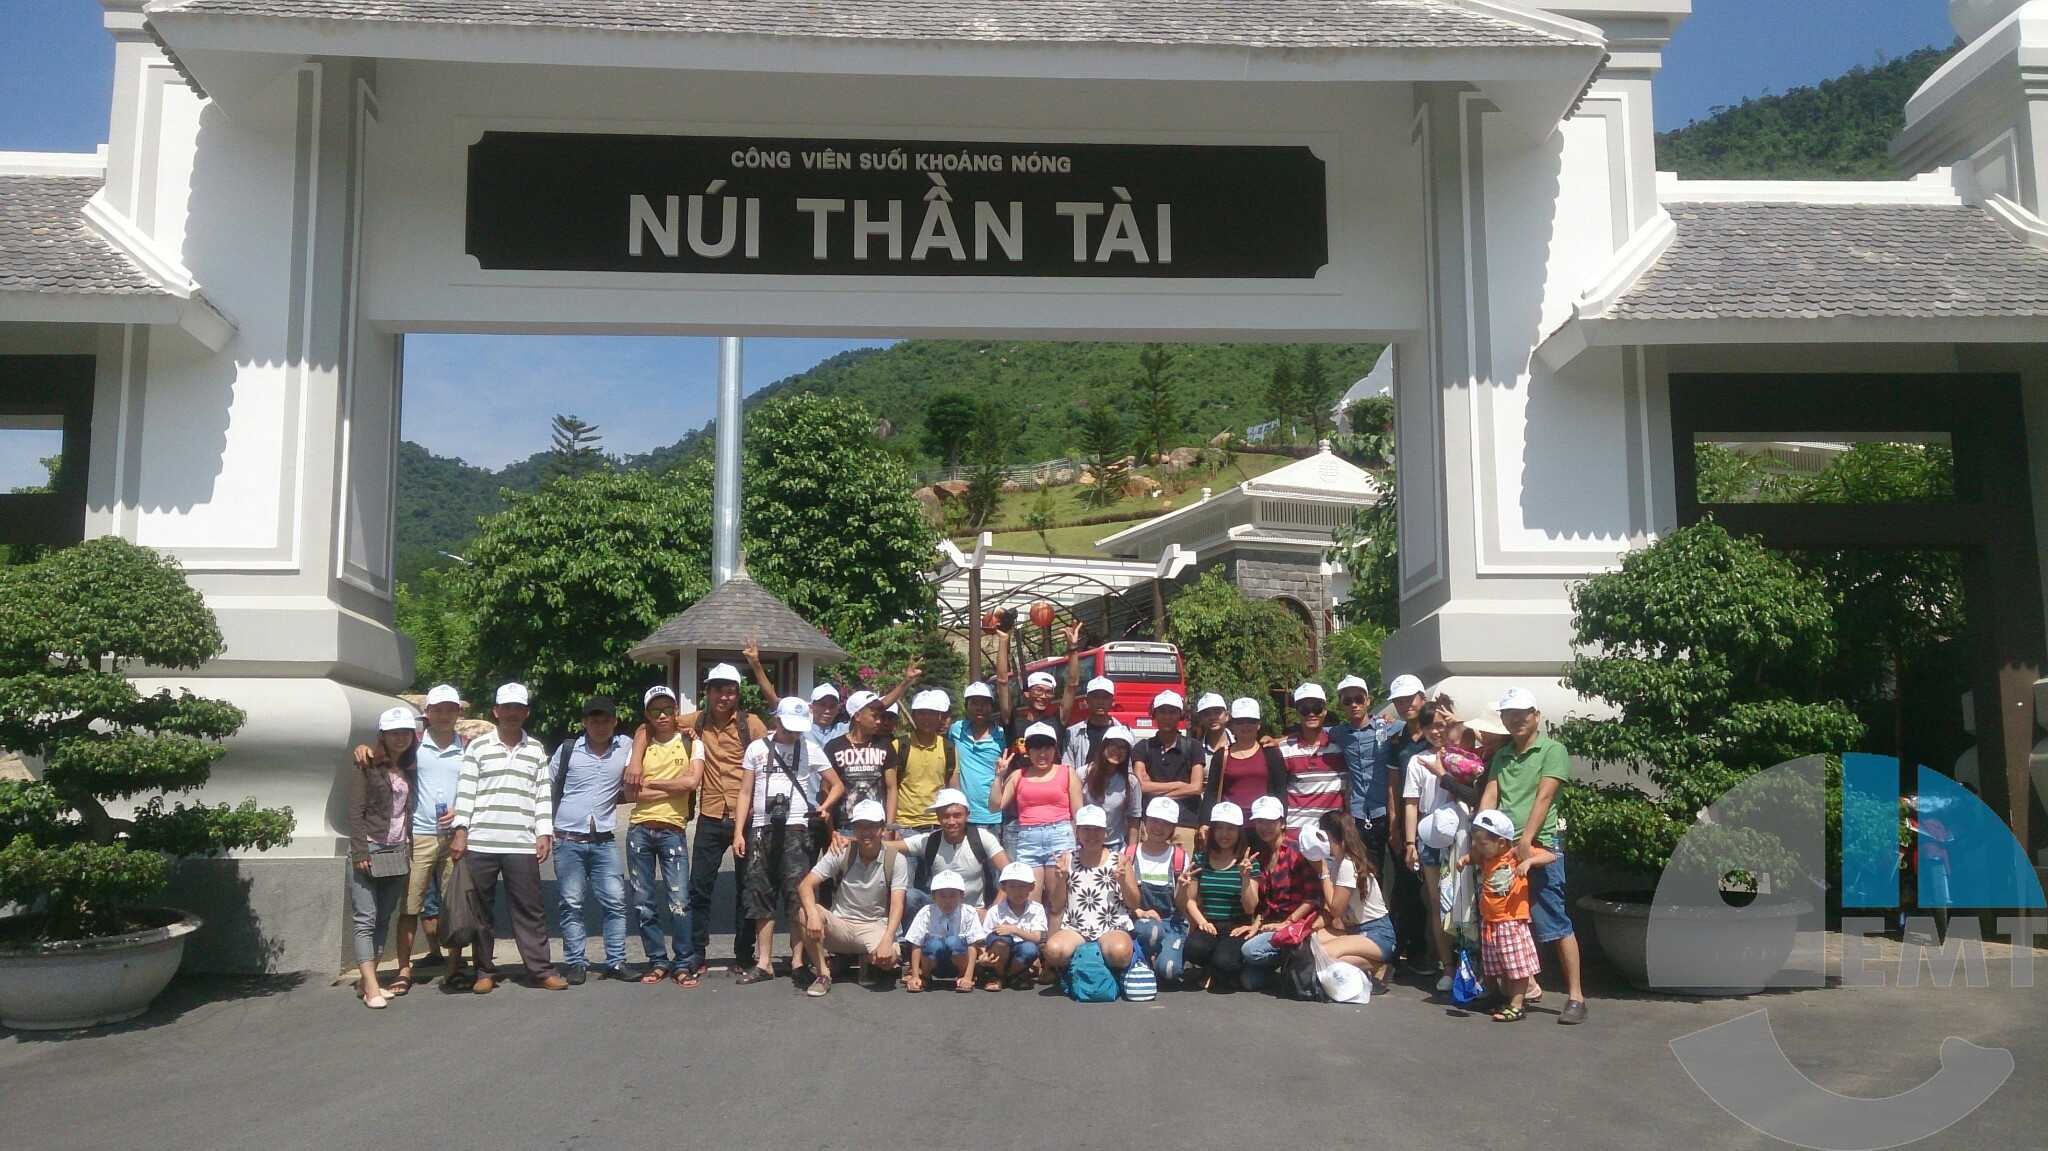 nui-than-tai-elephant-tour